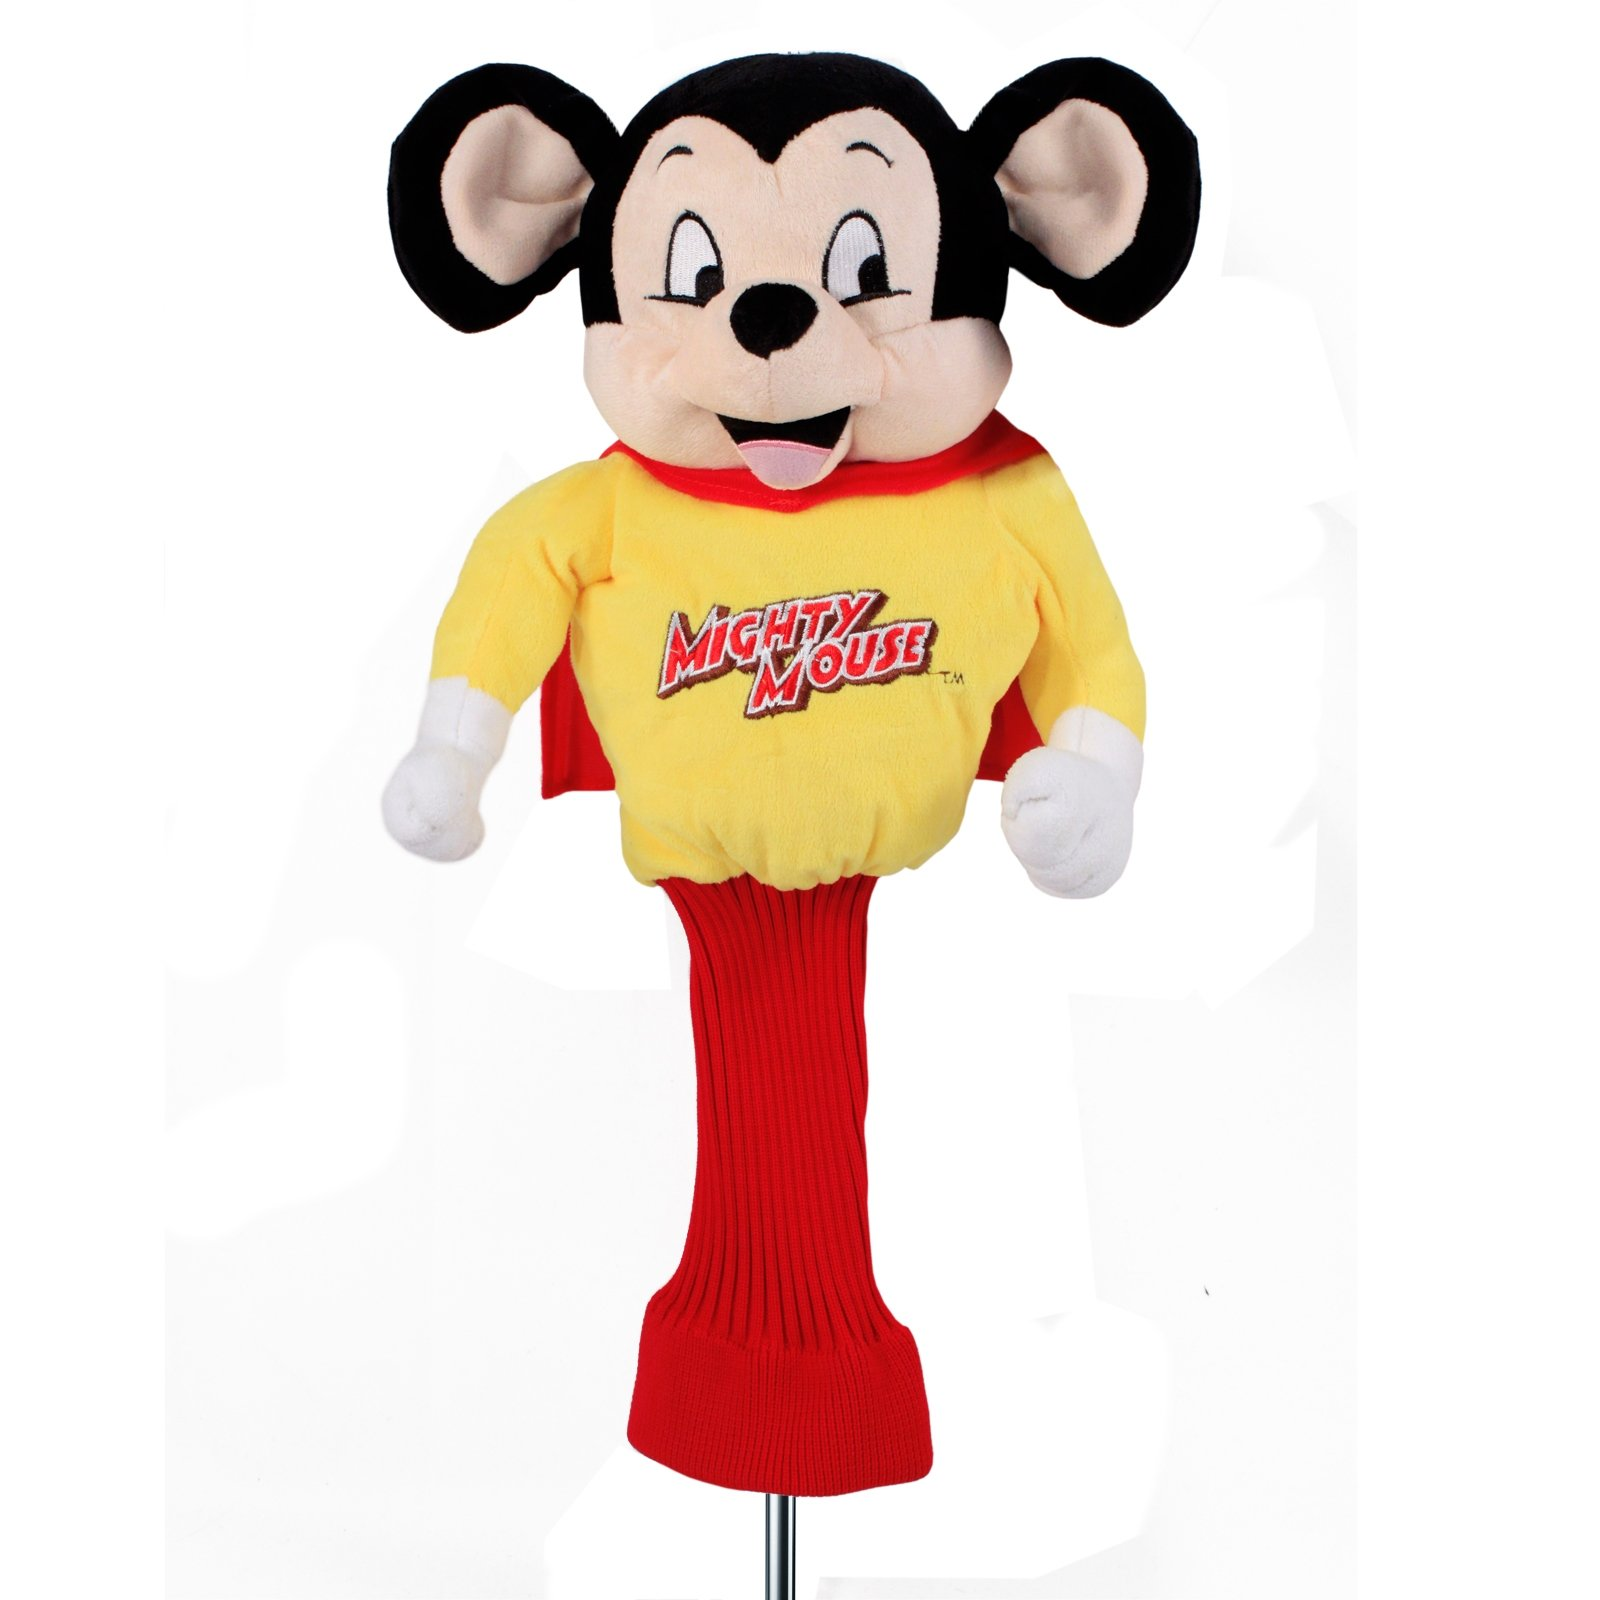 Officially Licensed Mighty Mouse Golf Club Head Cover - 460cc